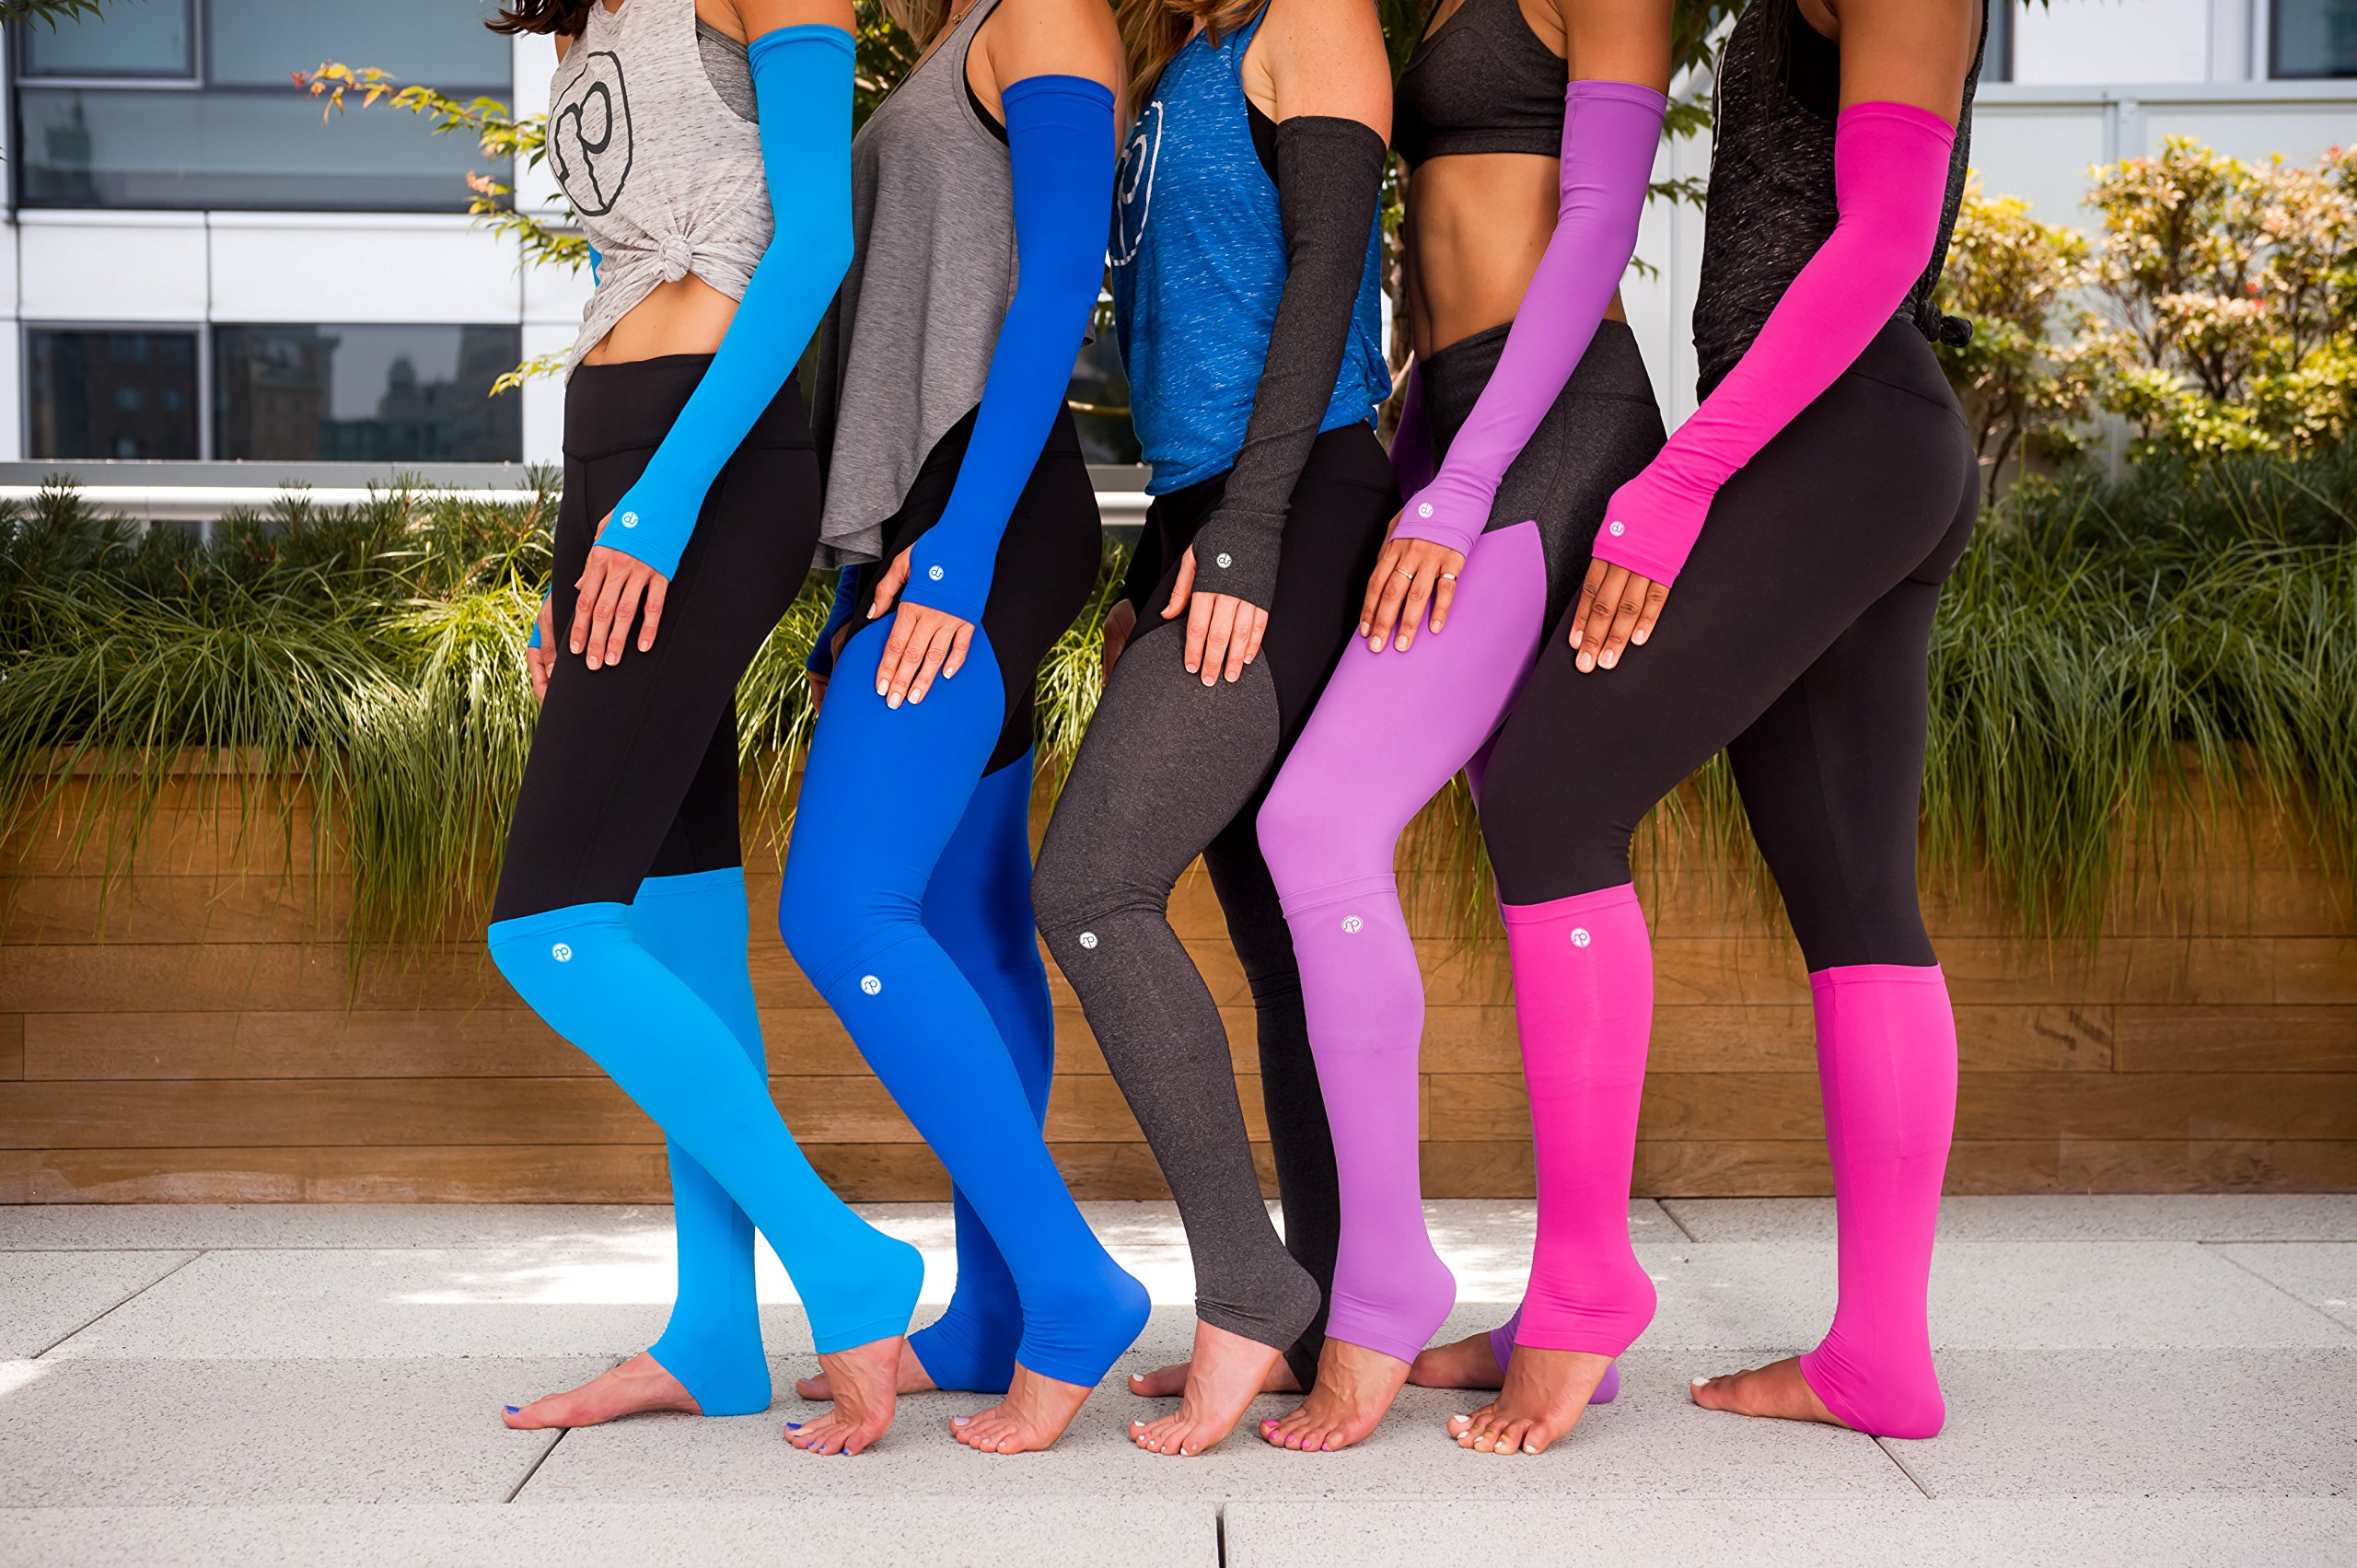 Nicepipes Arm Warmers for Women - UV Protection, Mild Compression, Arm Sleeves Perfect for Running, Cycling, and Yoga (Orchid)